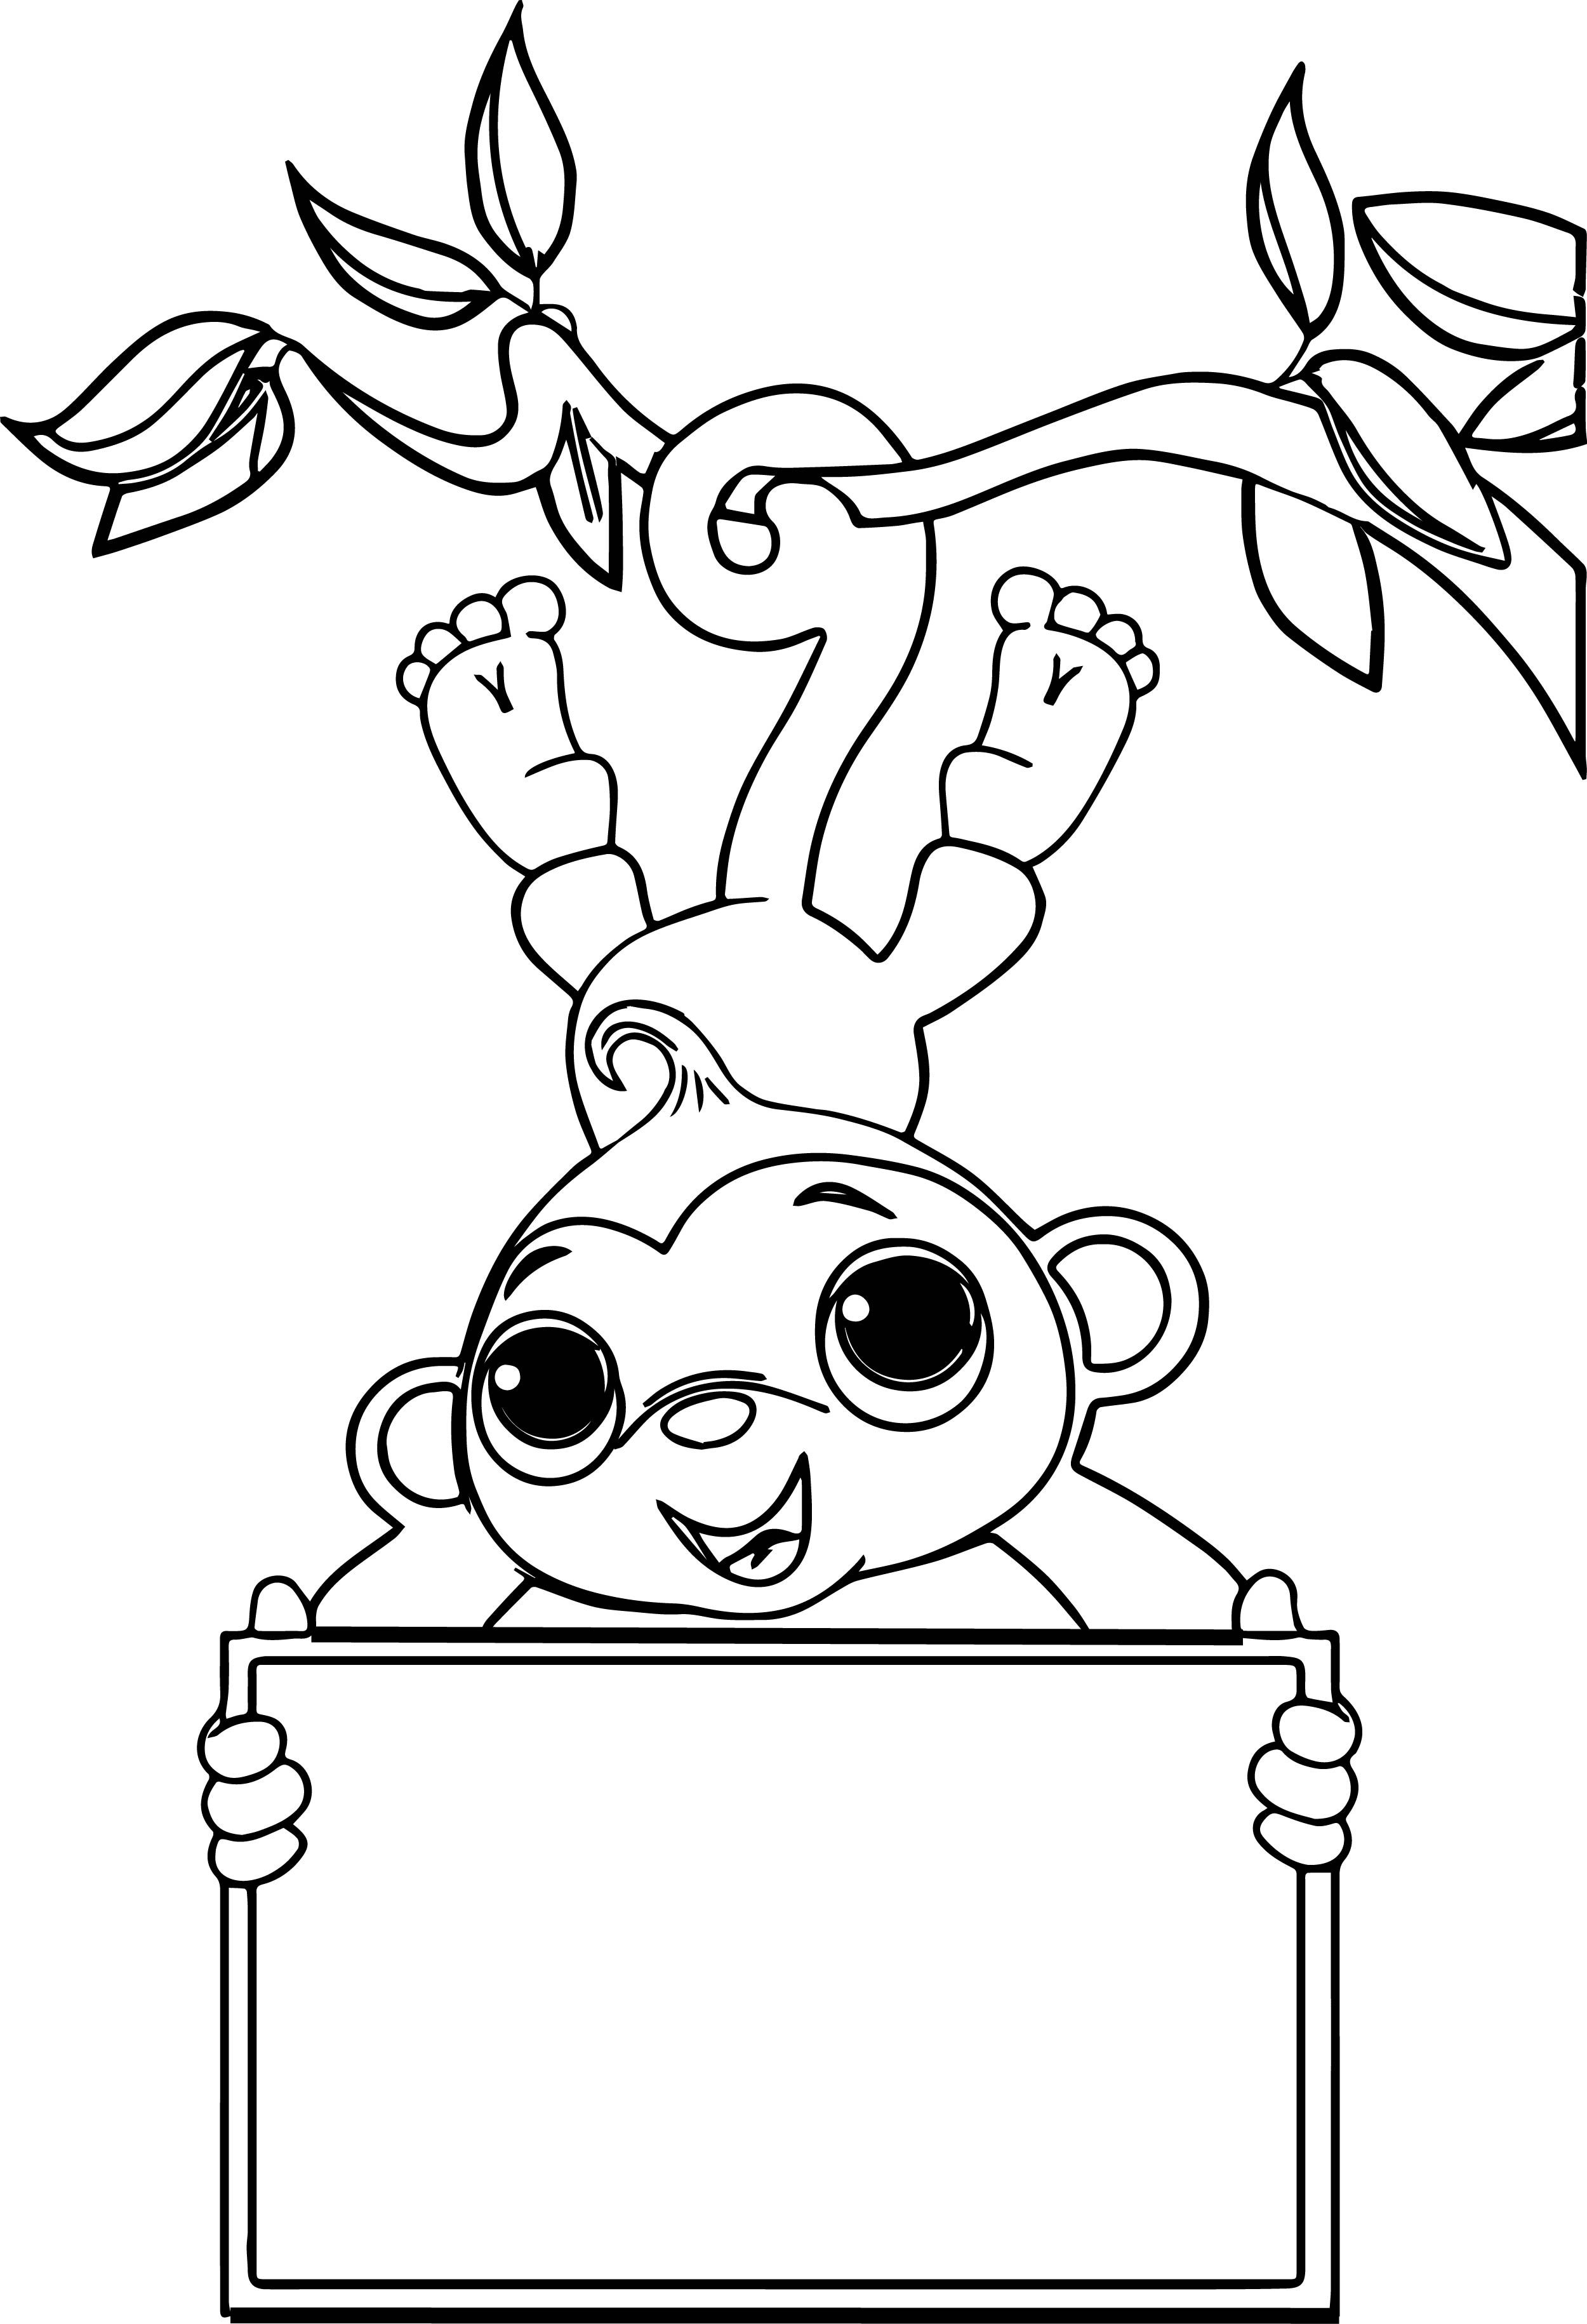 sock coloring page long socks coloring pages coloring page sock